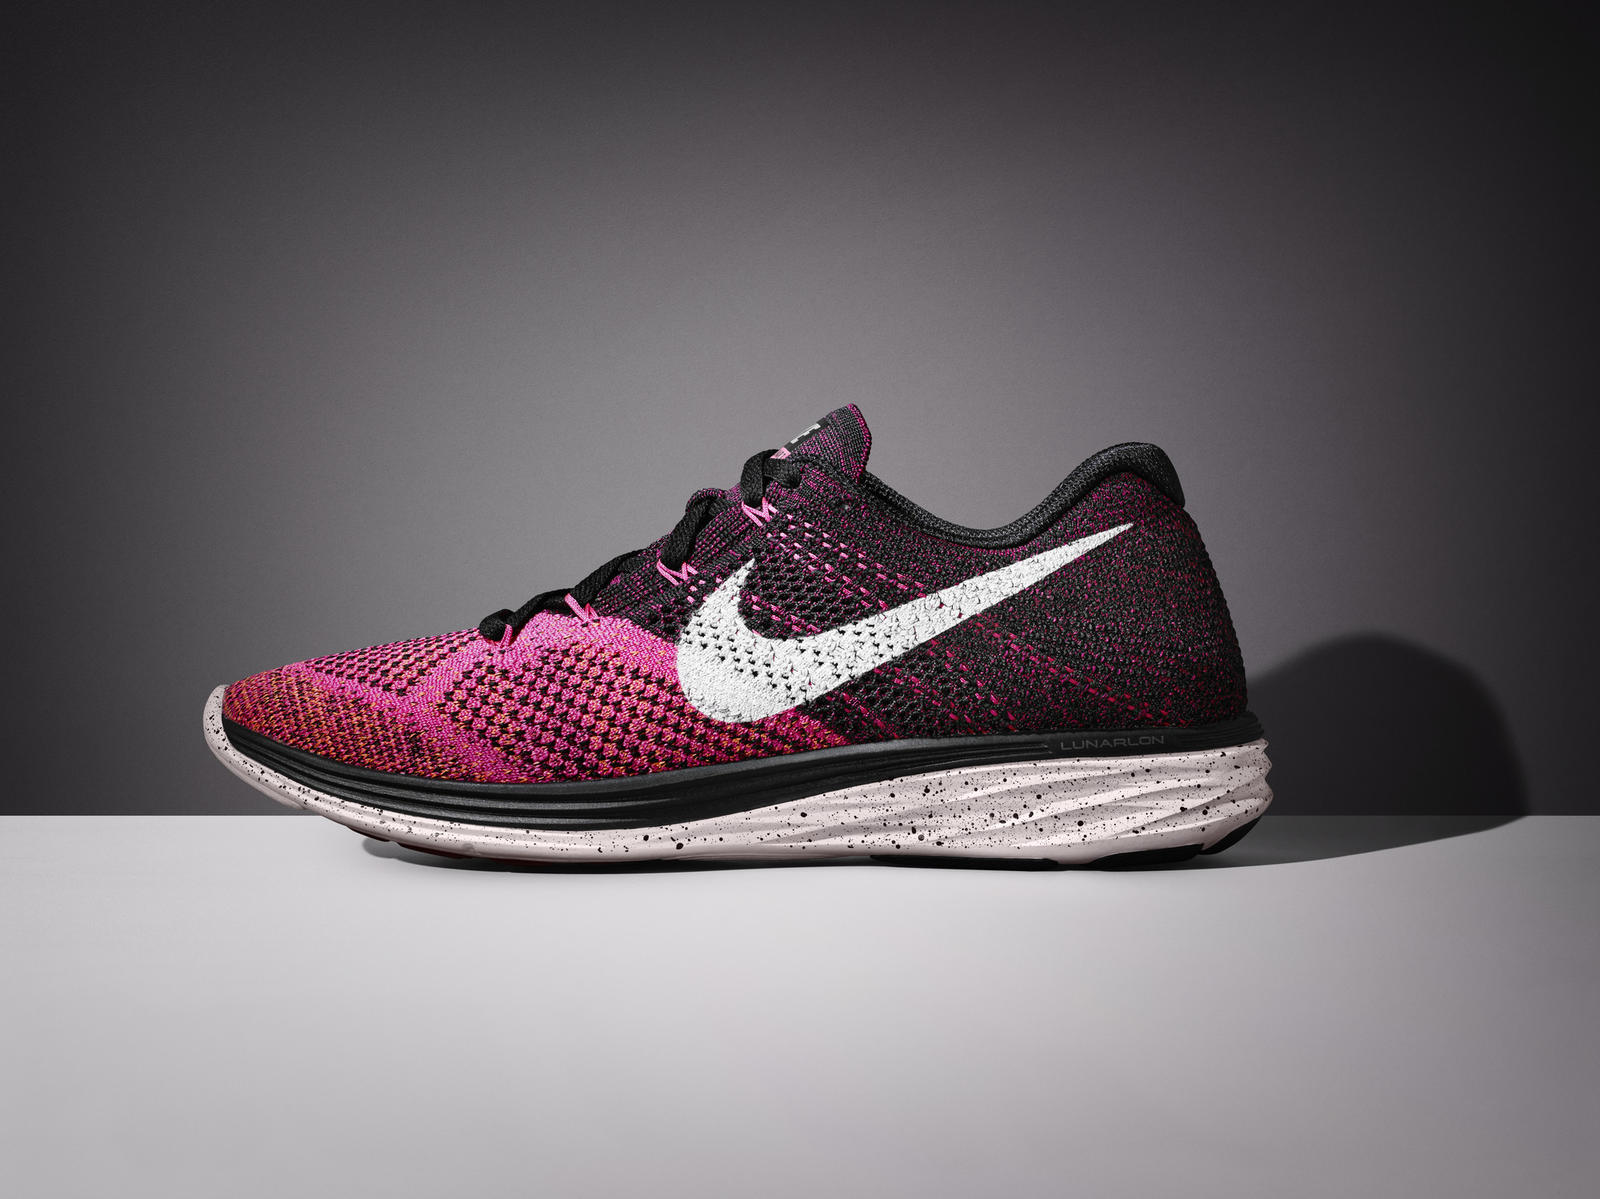 new styles 45f31 2d4b2 Nike Flyknit Lunar 3   Made light to go long - Nike News